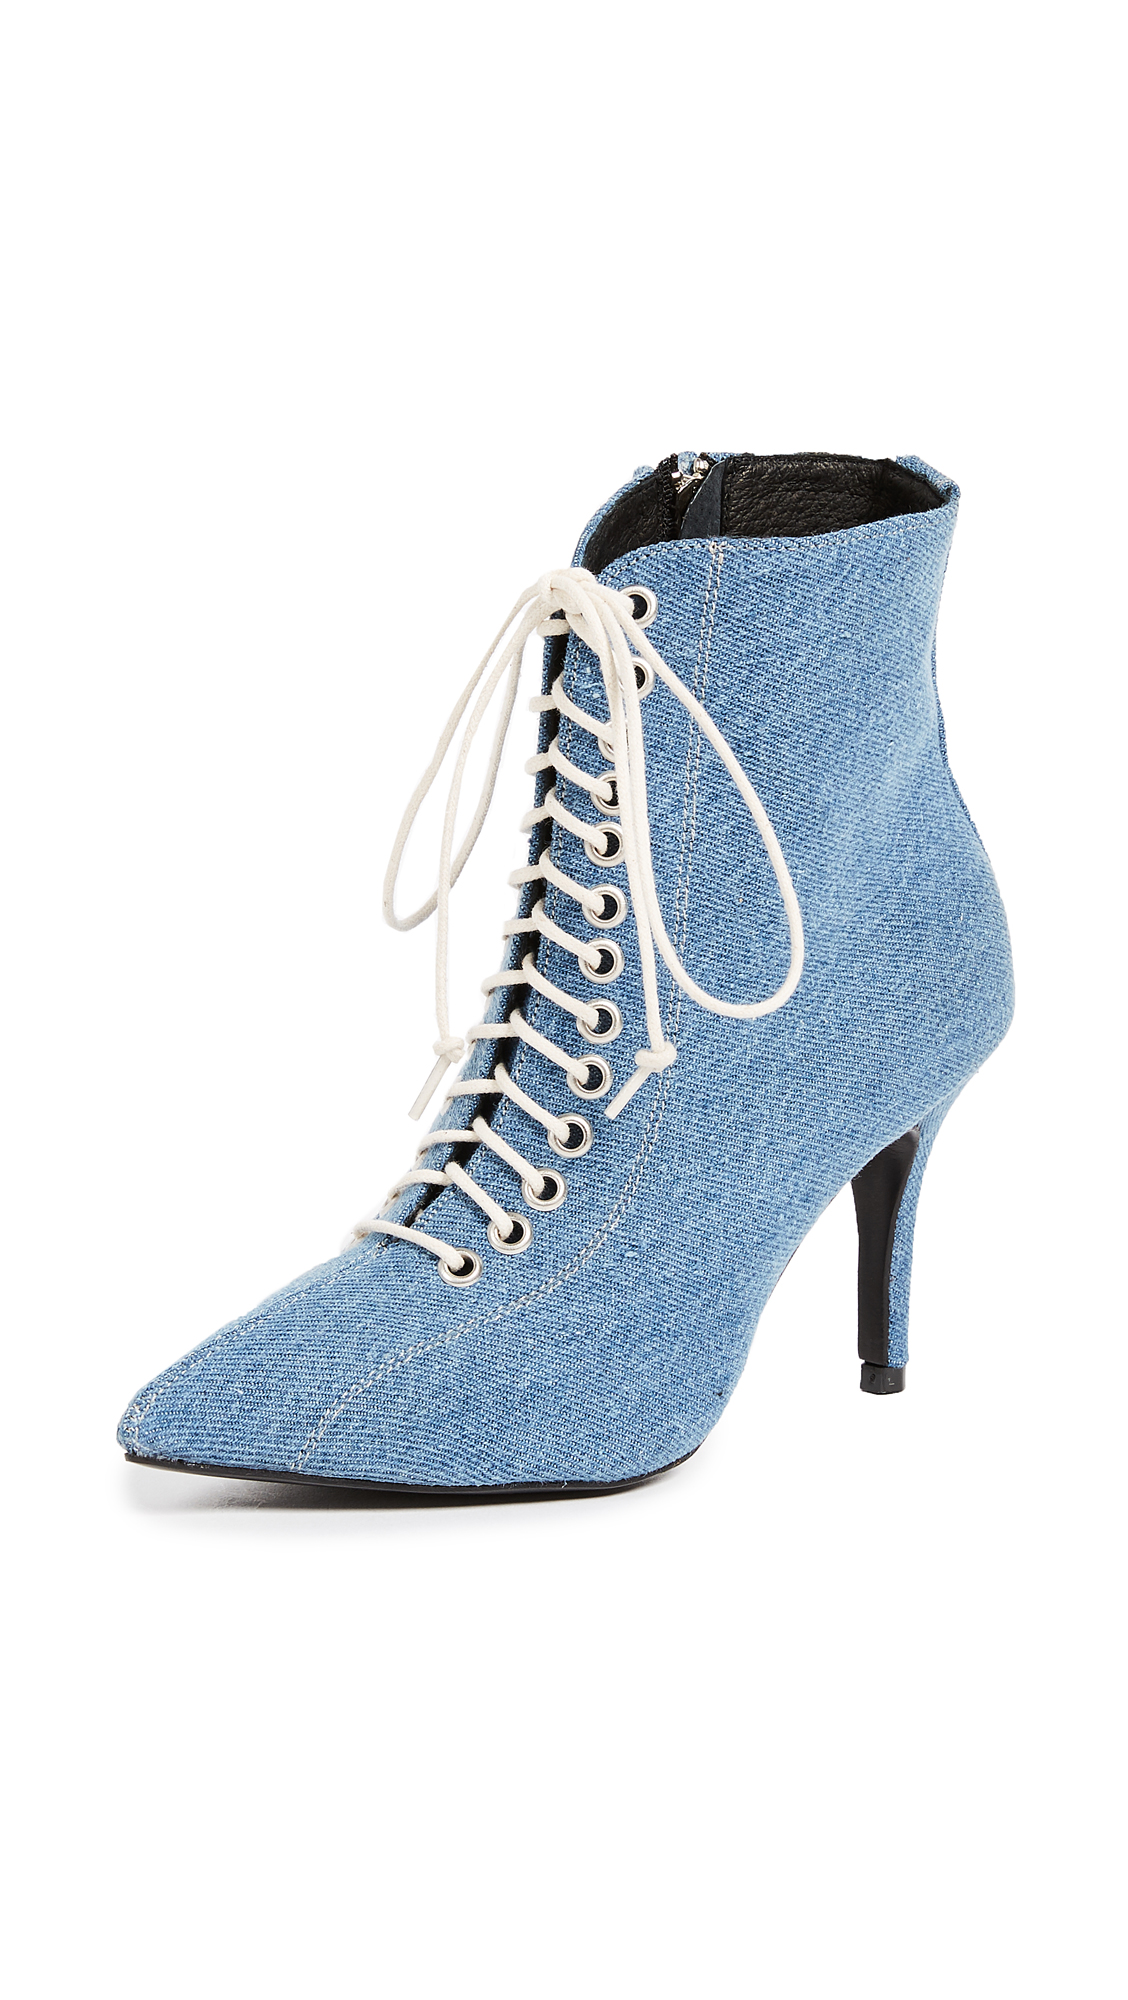 The Archive Delancey Lace Up Booties - Denim